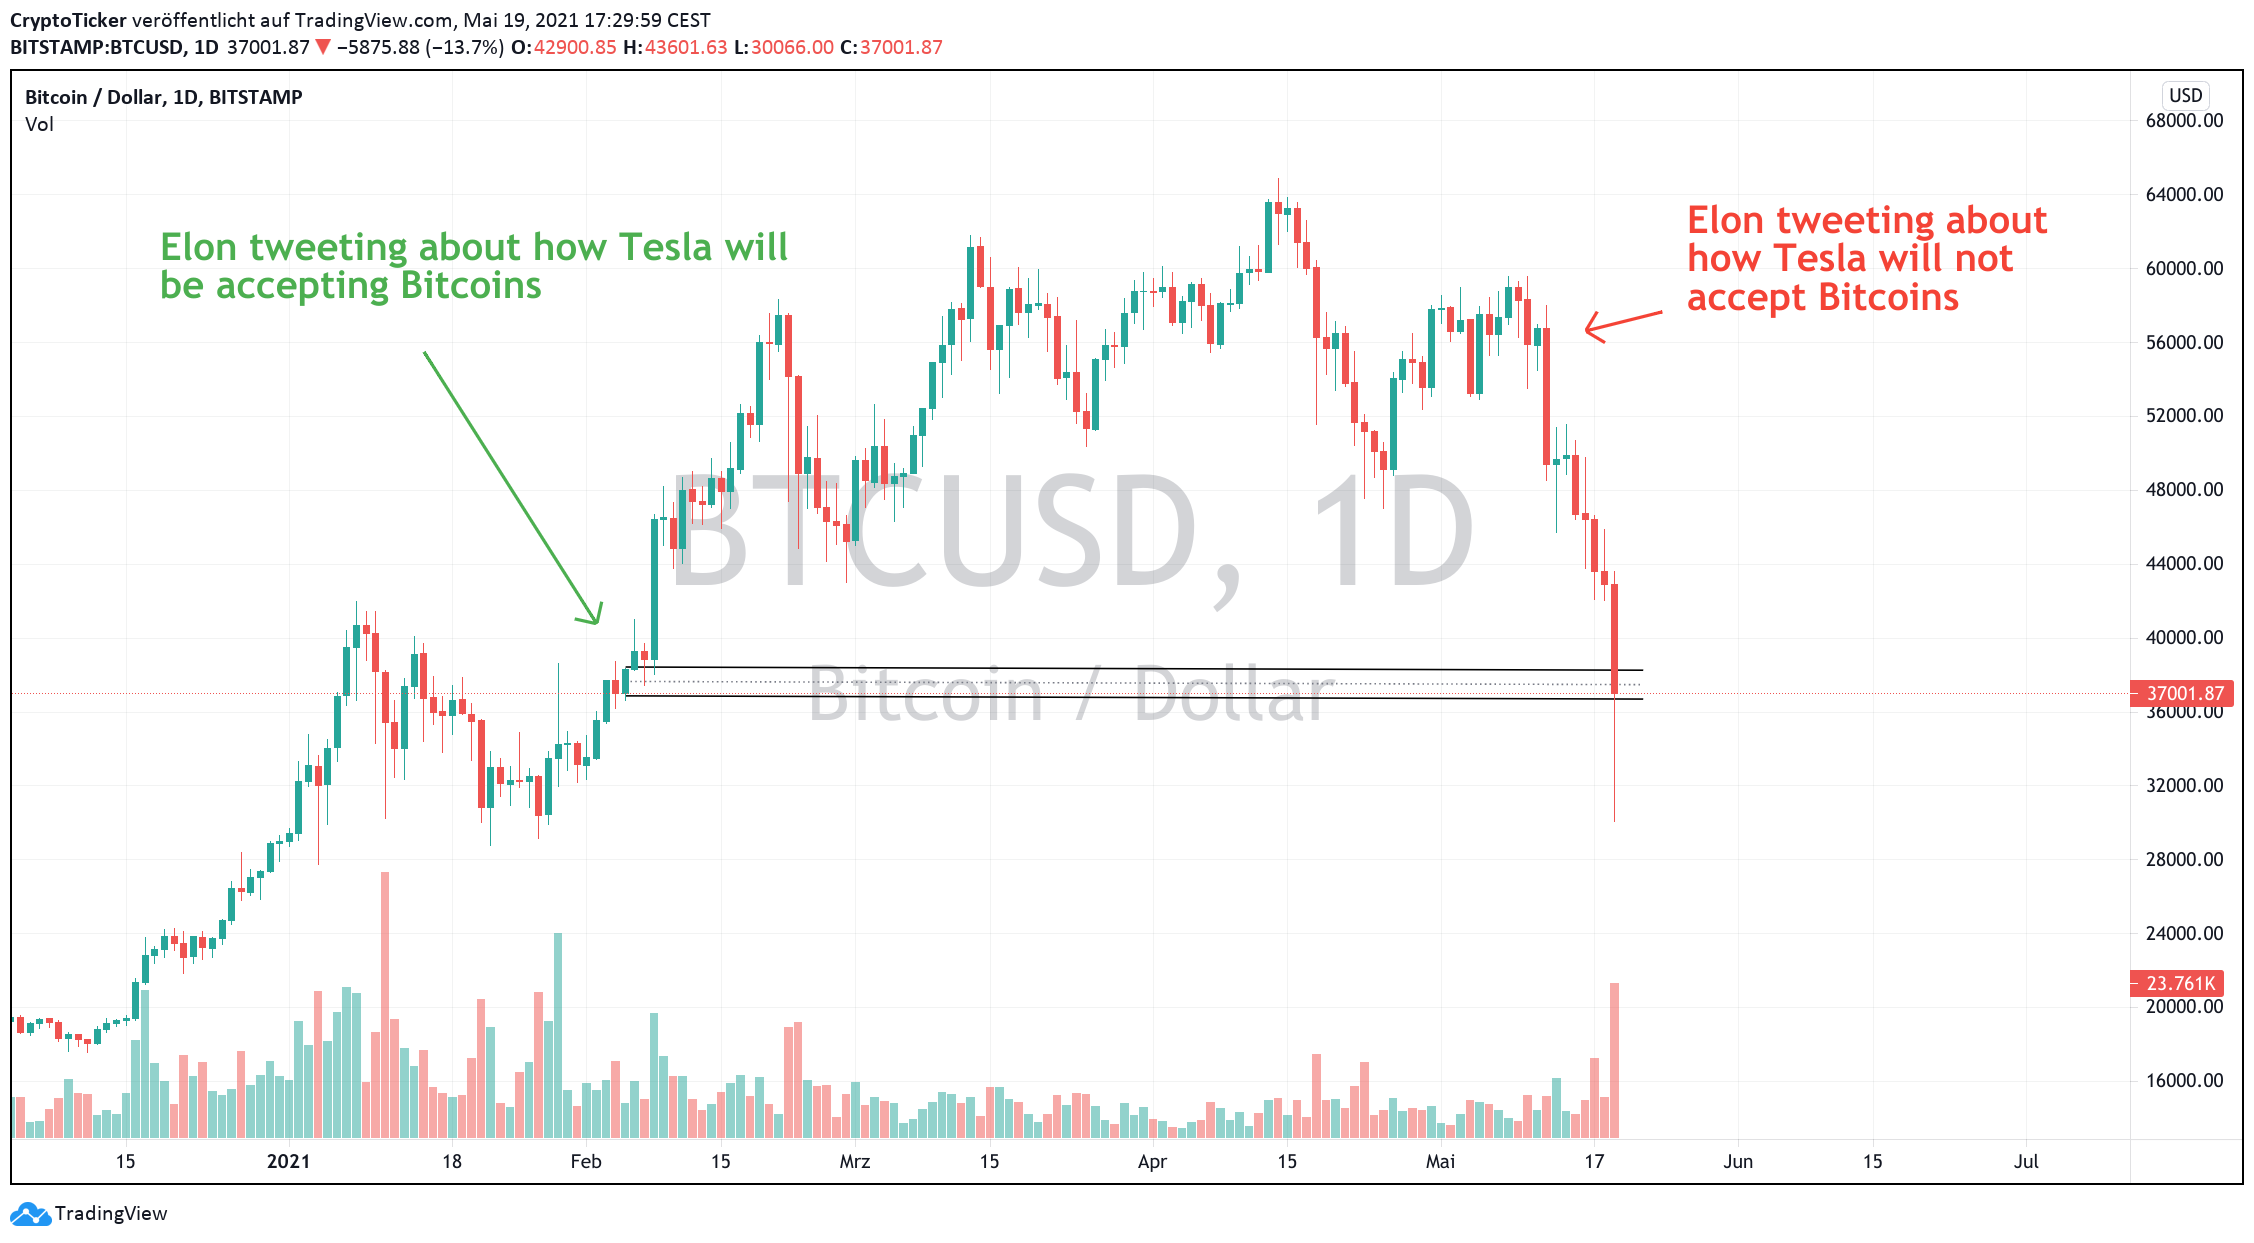 BTC/USD 1-day chart showing Elon's tweets effect over BTC prices